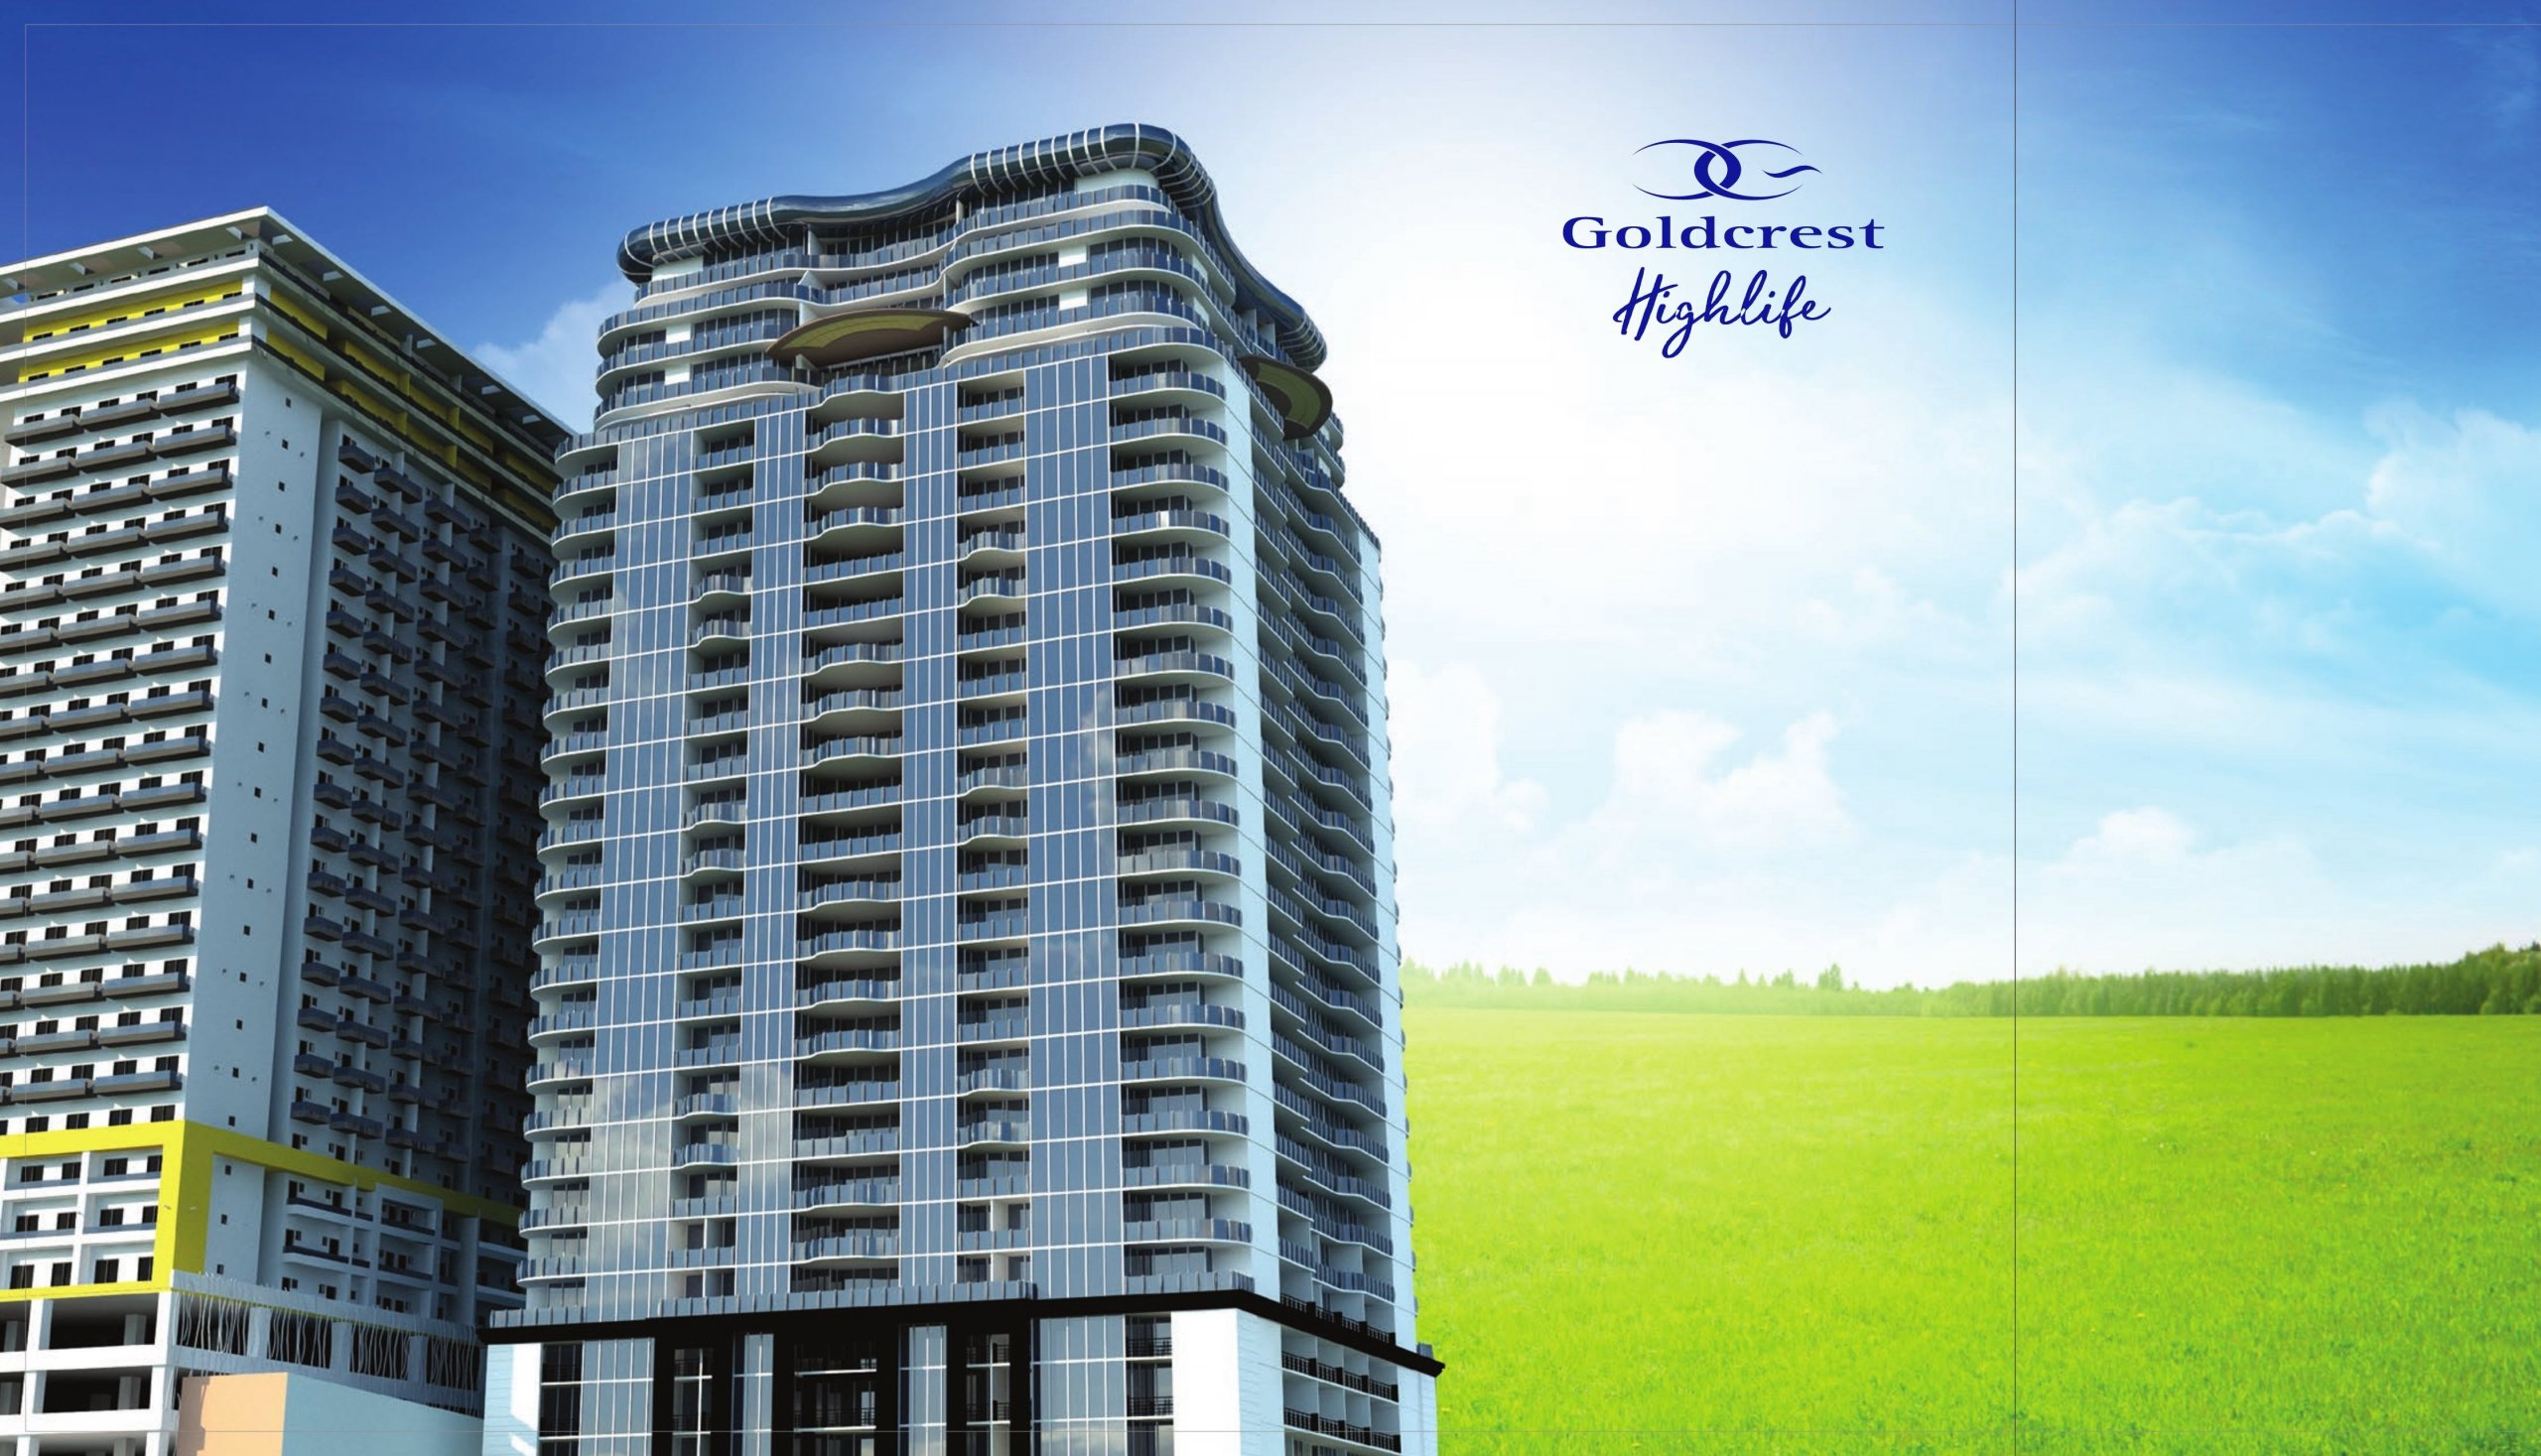 goldcrest highlife 1 - luxury apartments in dha phase 2